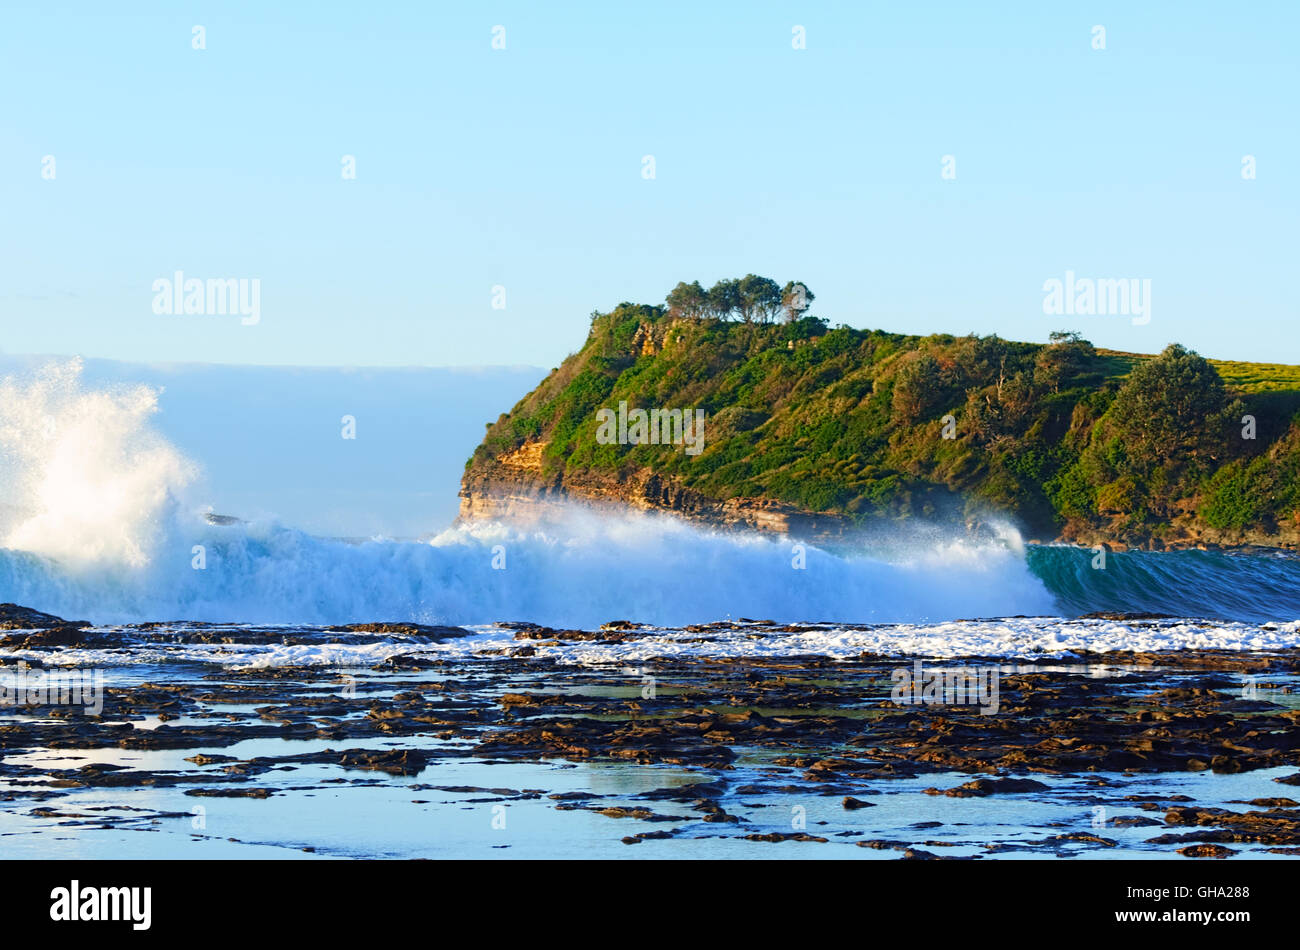 Heavy Seas at Boat Harbour, Gerringong, Illawarra Coast, New South Wales, NSW, Australia - Stock Image